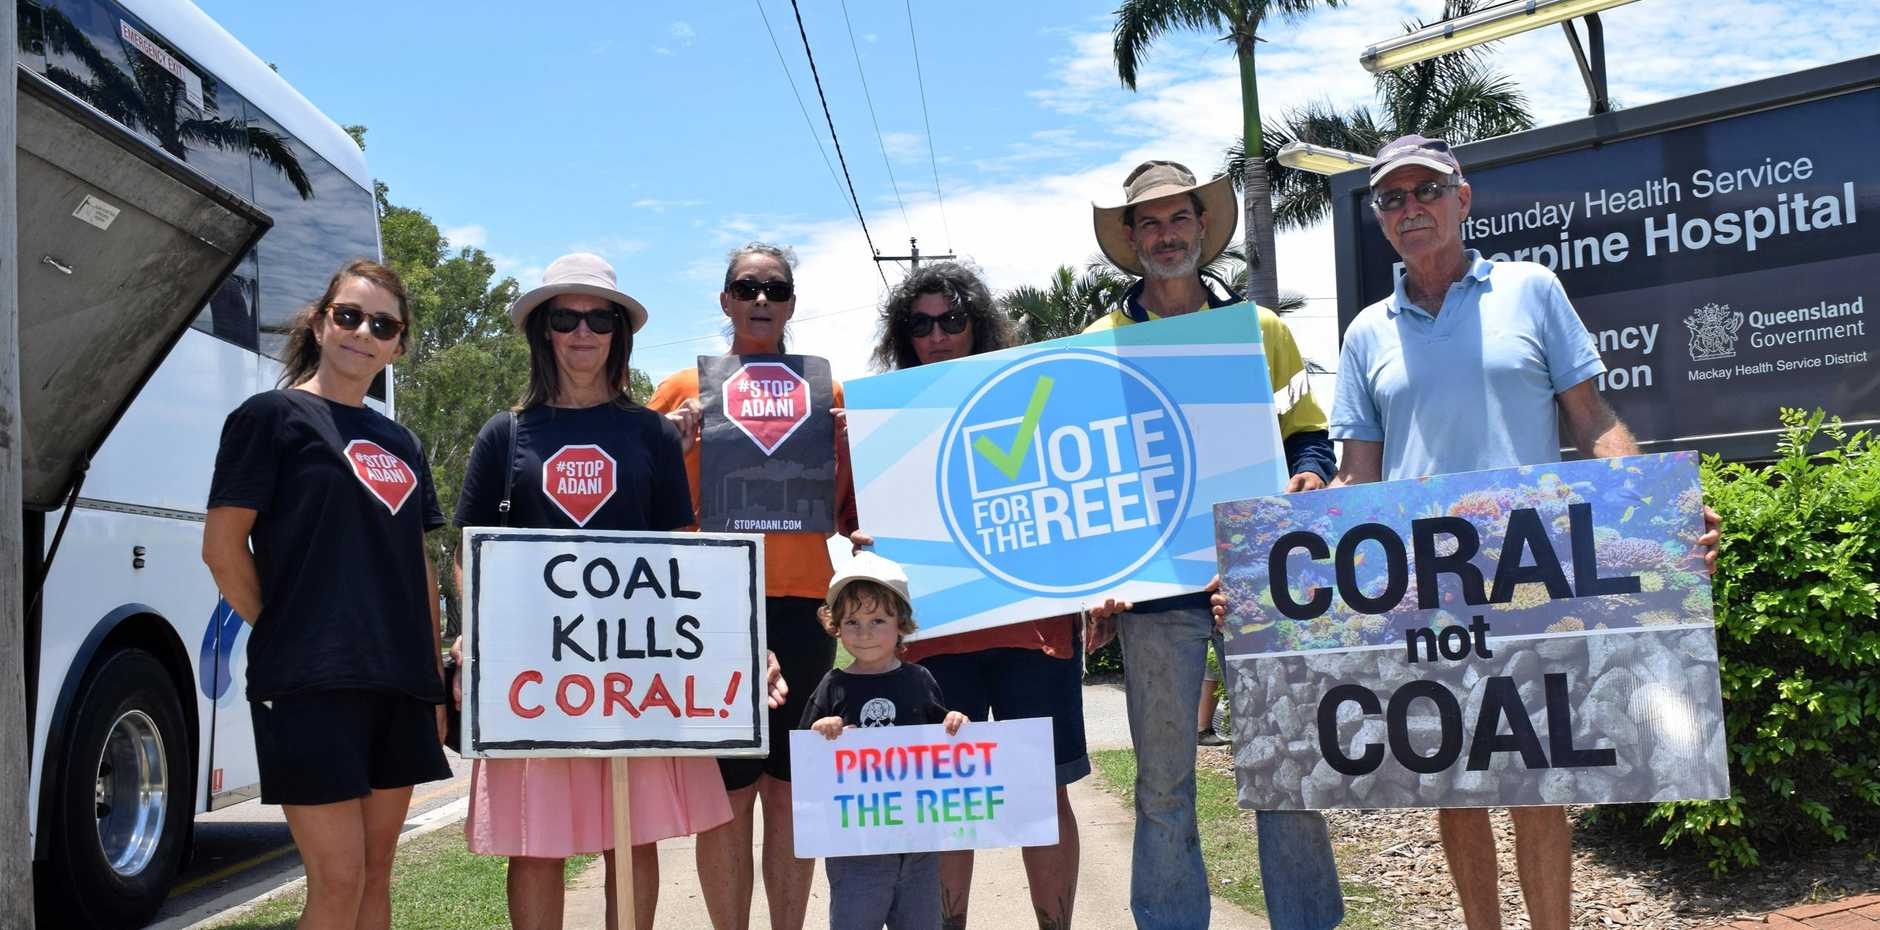 A group of anti-Adani protesters outside the Proserpine Hospital today as Queensland Premier Annastacia Palaszczuk made an announcement.